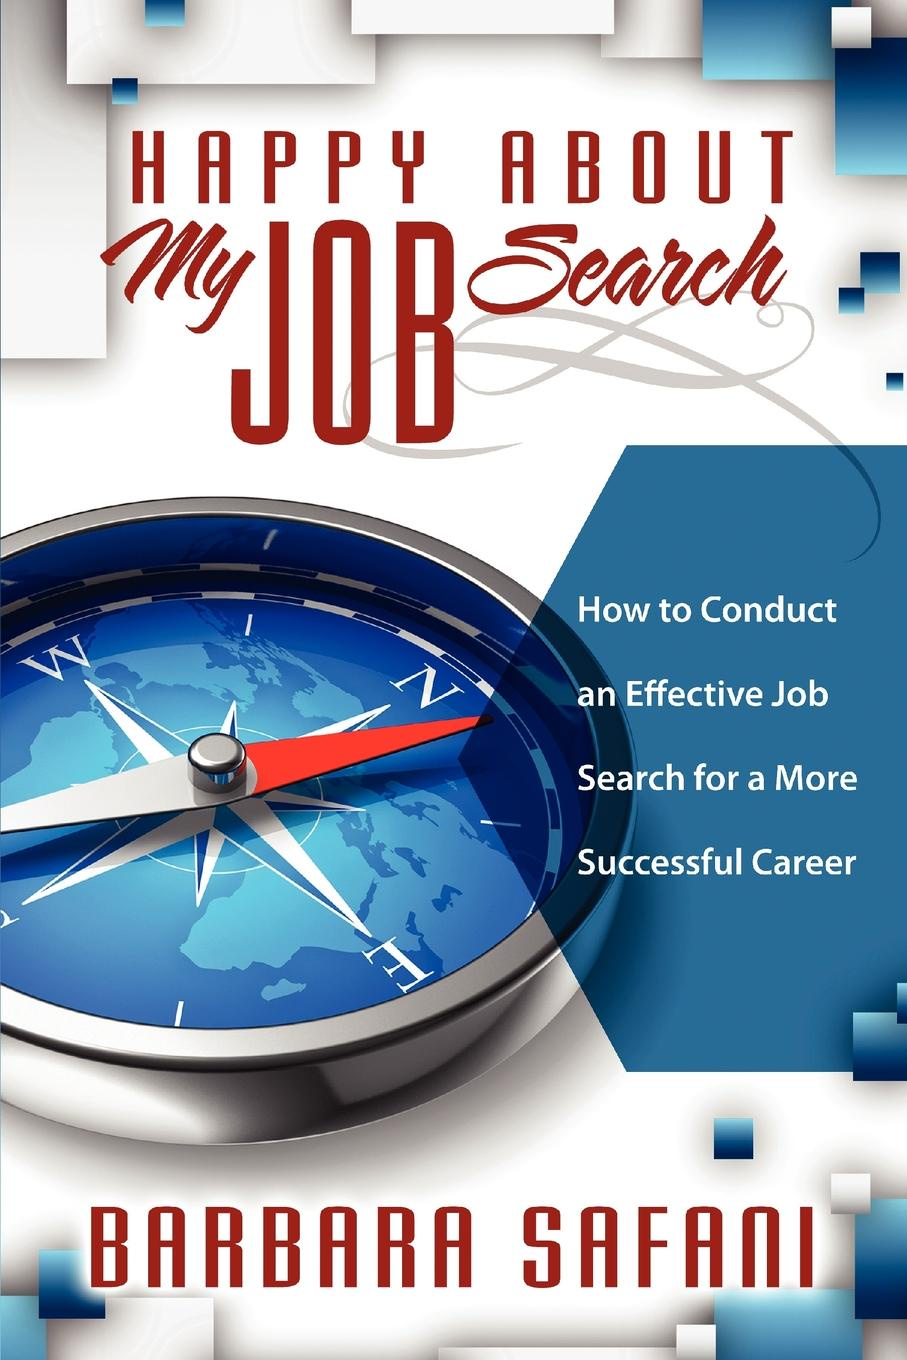 Barbara Safani Happy About My Job Search. How to Conduct an Effective Job Search for a More Successful Career optimal unemployment insurance in a job search